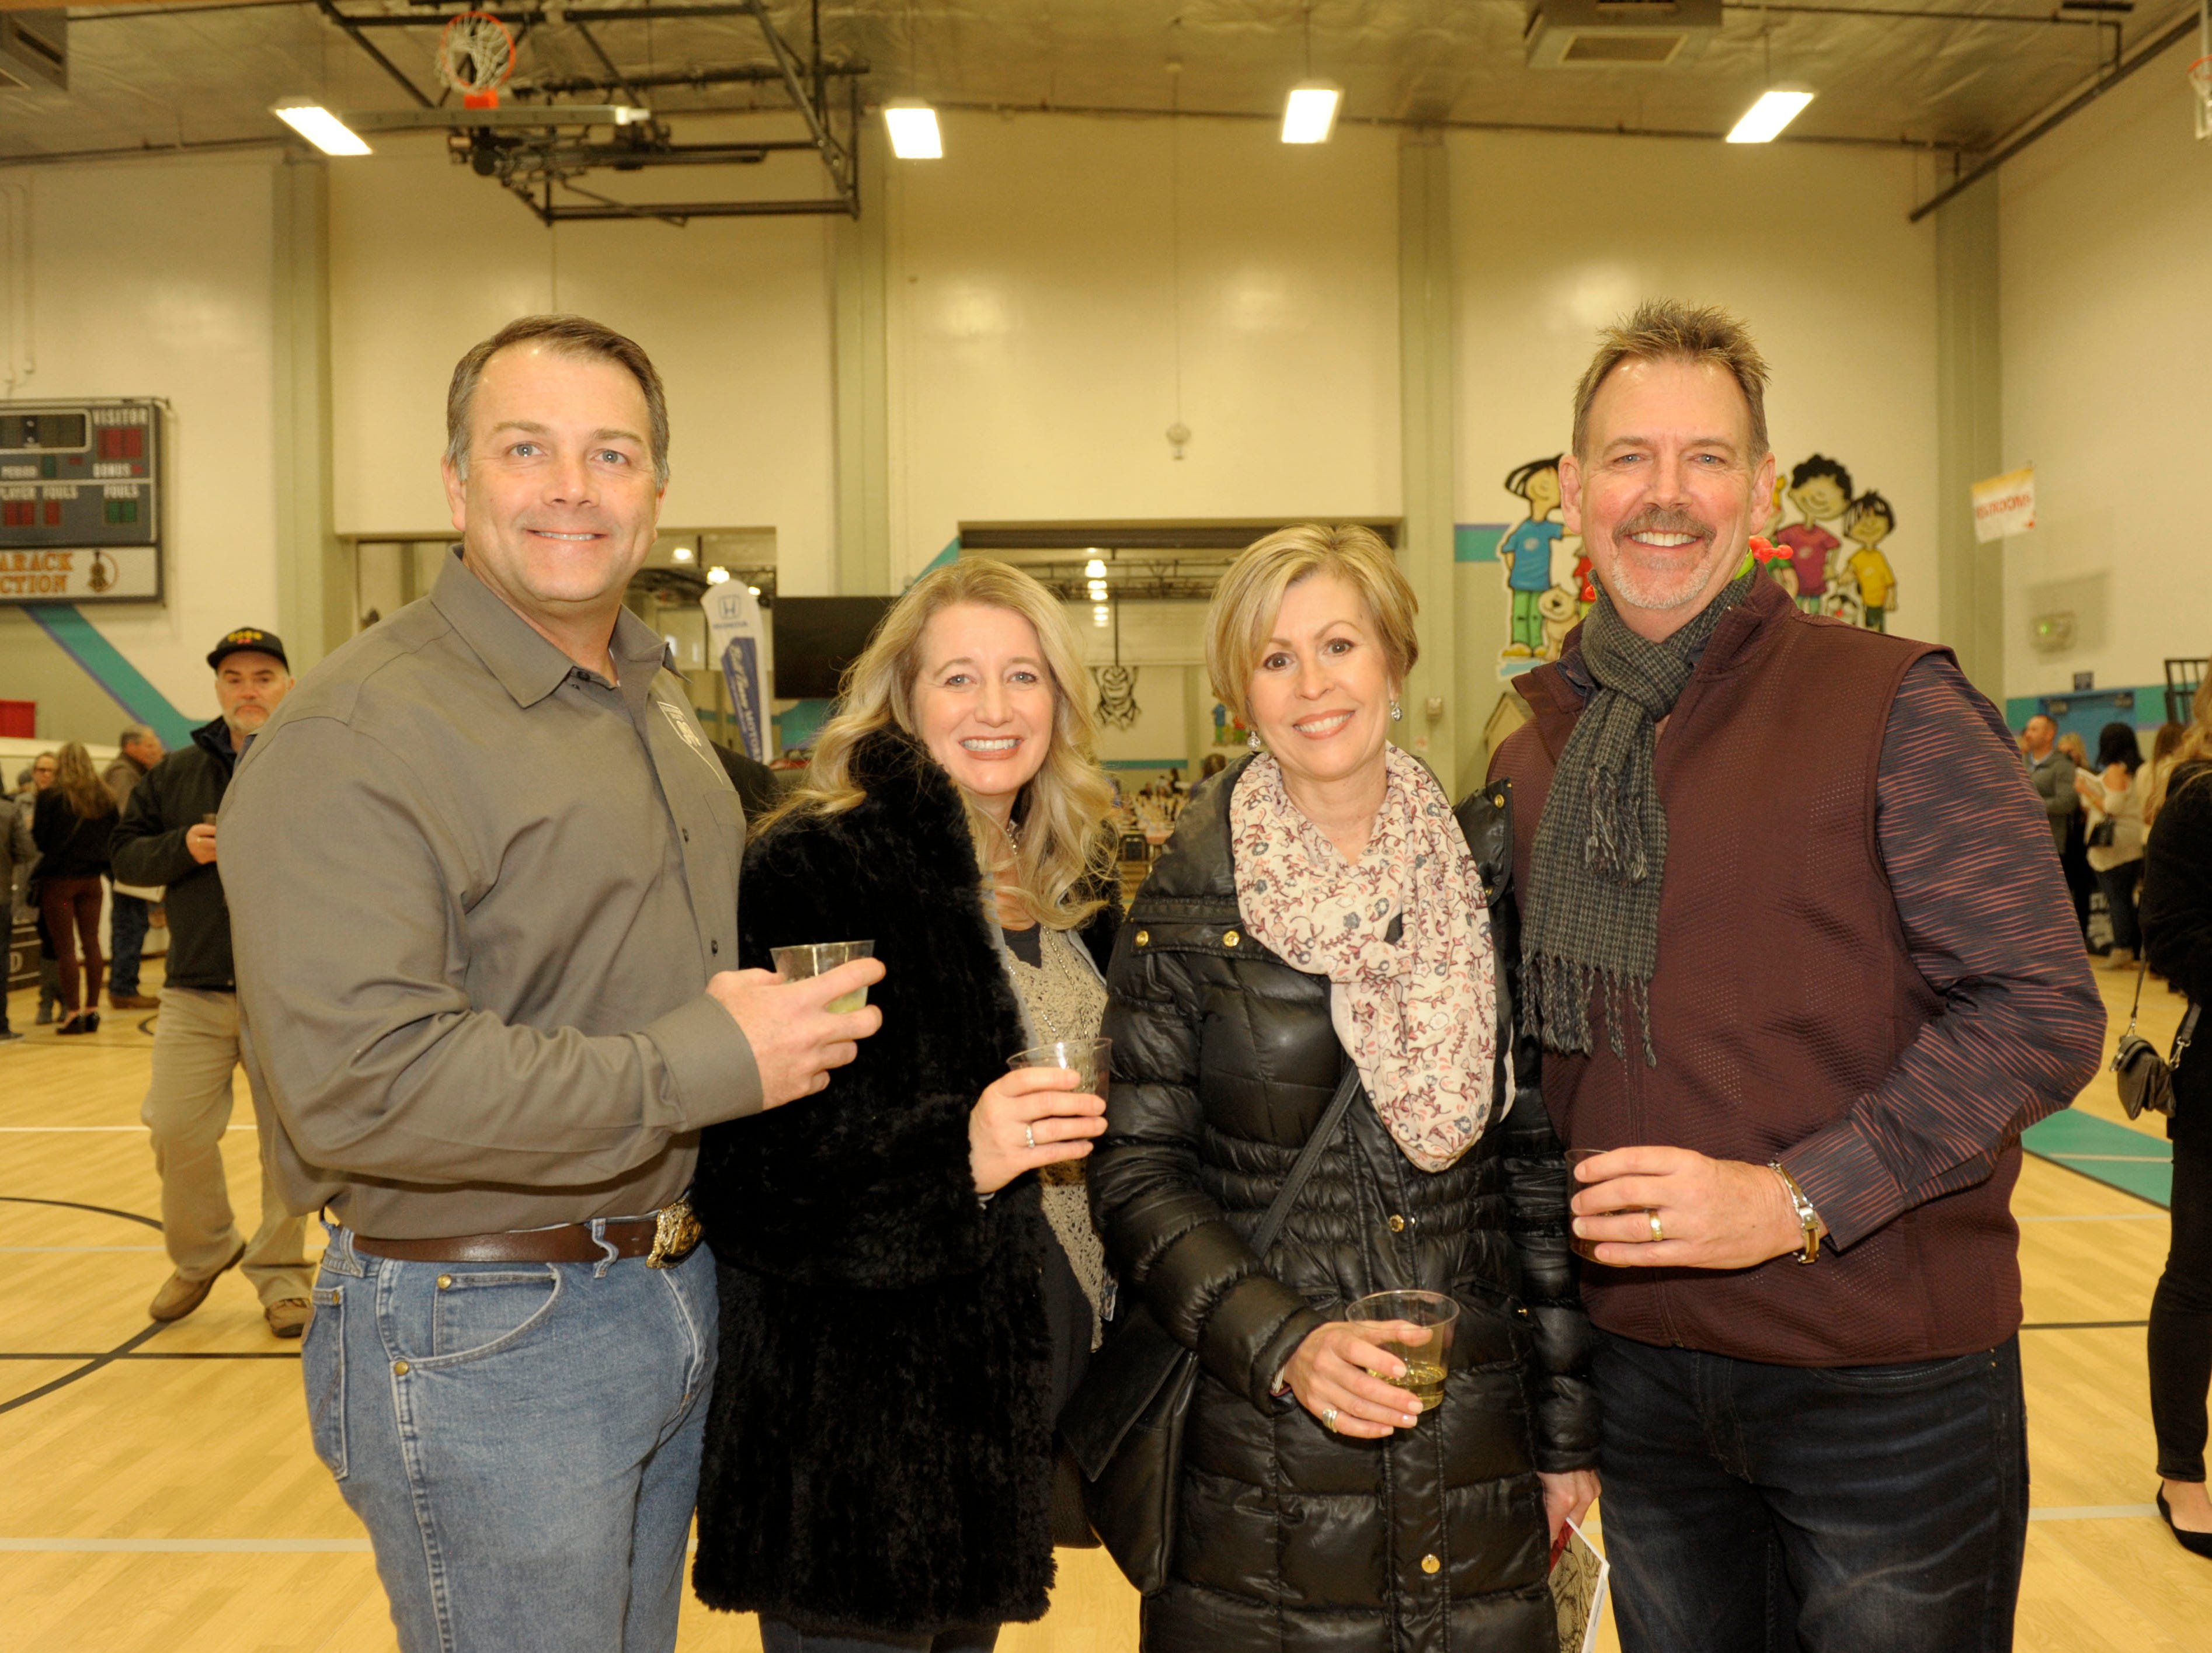 Eric and Renee Millette and Deb and Jim de Lancey attend the 39th Annual Jack T. Reviglio Cioppino Feed and Auction at the Boys & Girls Club of Truckee Meadows Sat., Feb. 23, 2019. Photos by Lisa J. Tolda/Special to the RGJ.